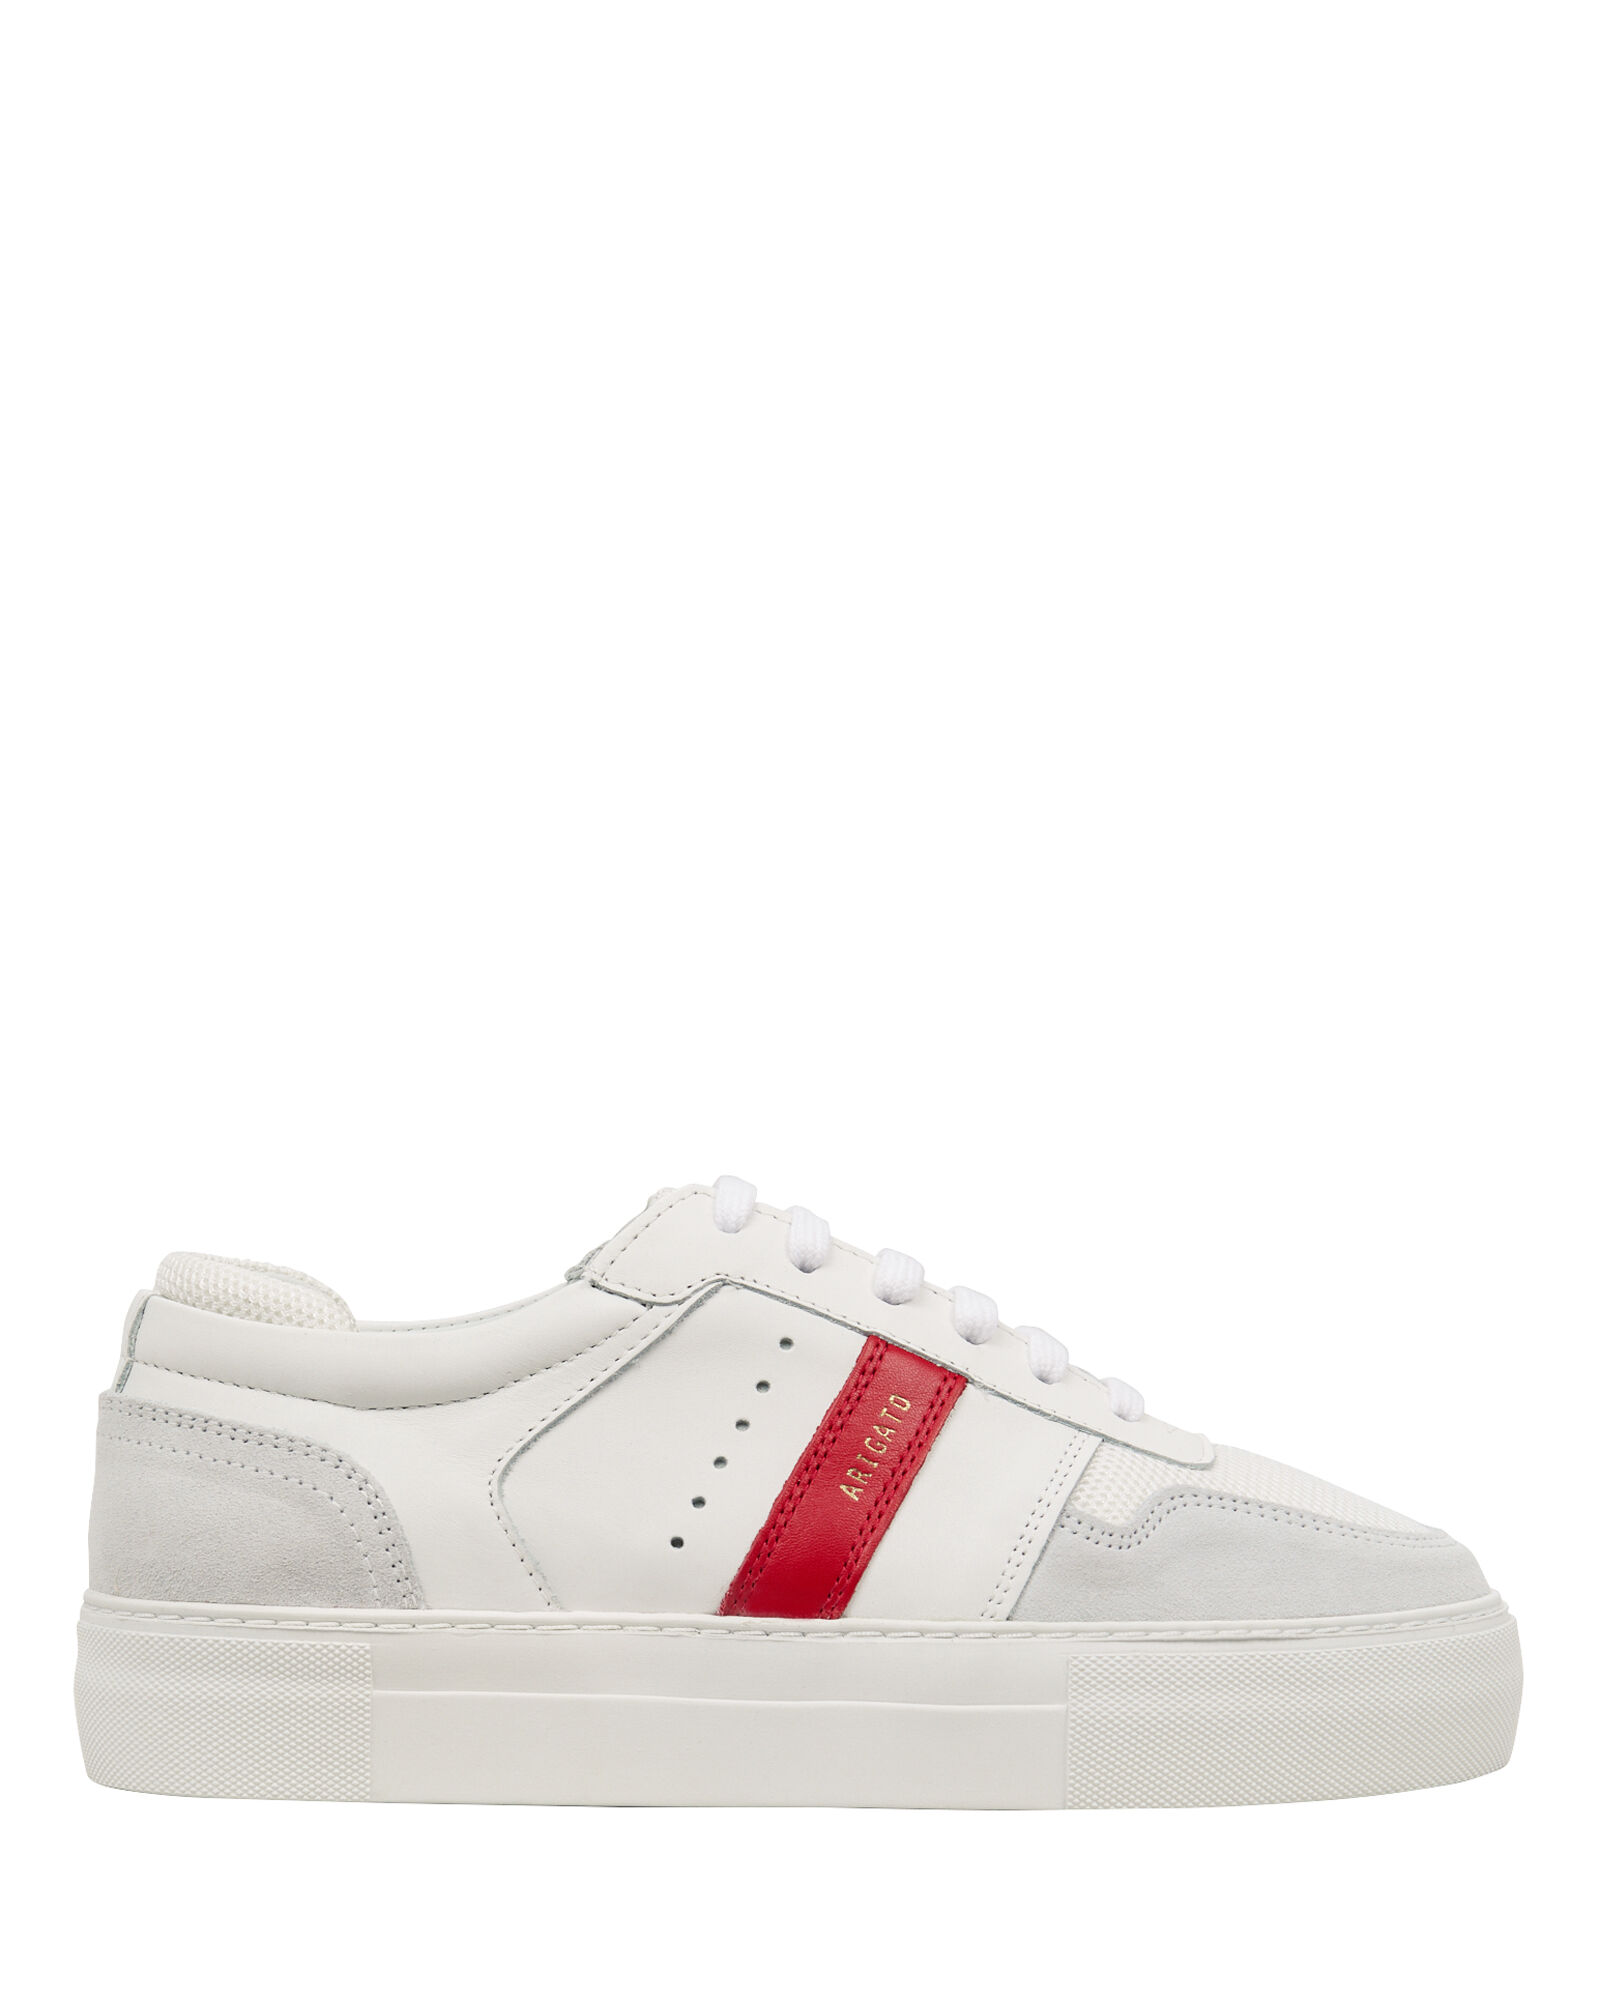 Platform Striped Leather Sneakers, WHITE, hi-res